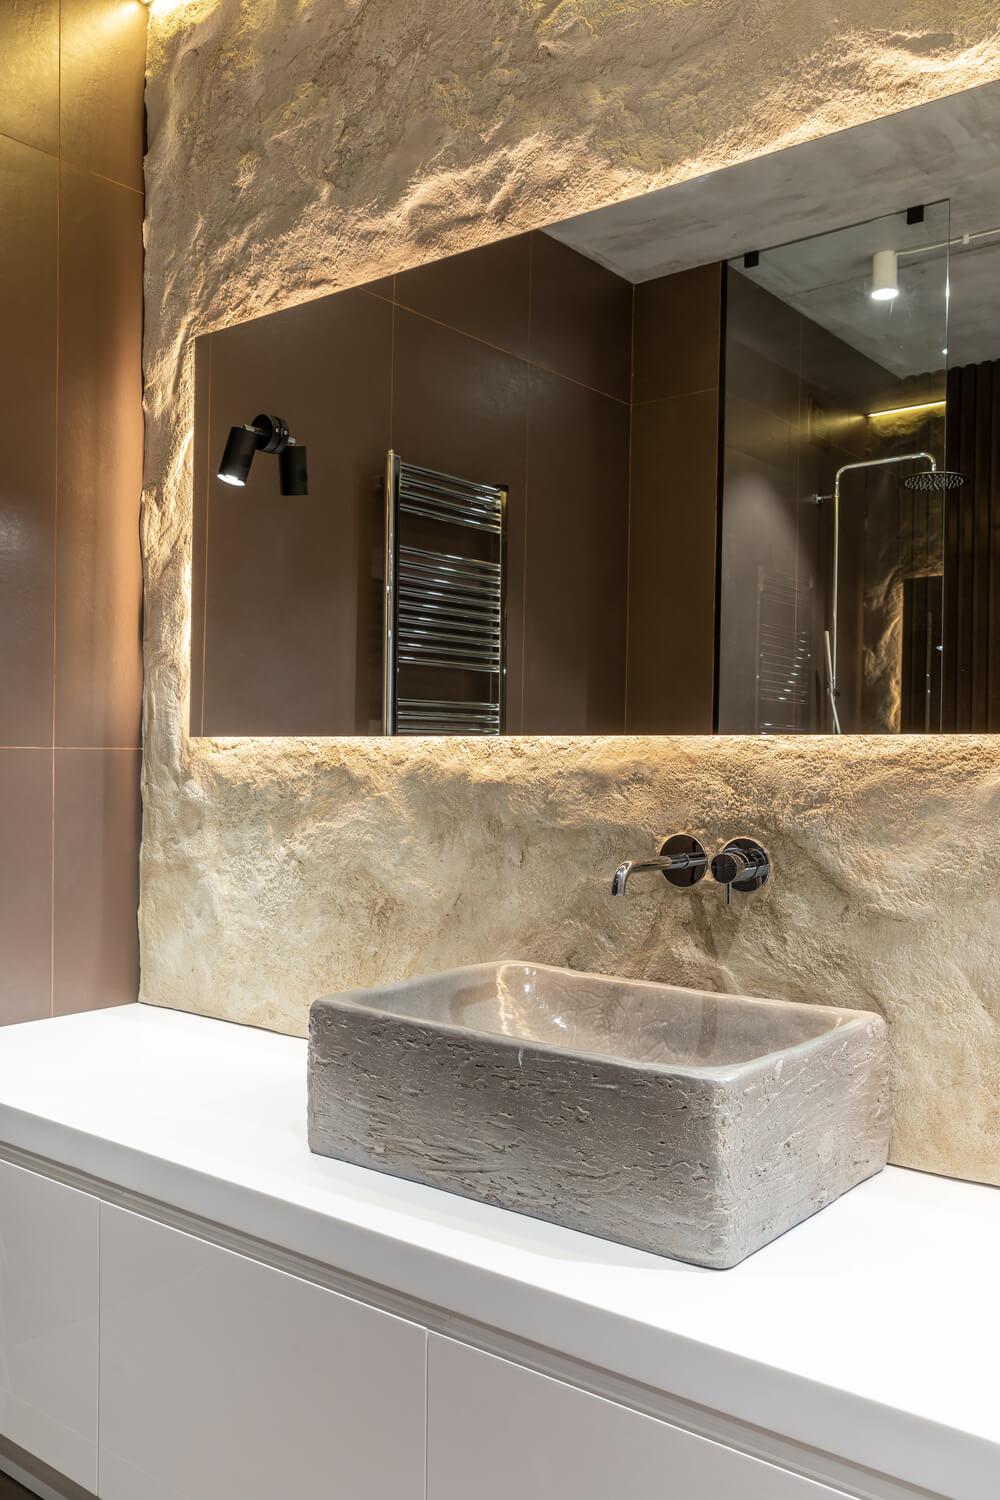 This is a close look at the rough textured structure of the sink that matches the textured stone wall adorned with the mirror's modern lighting.